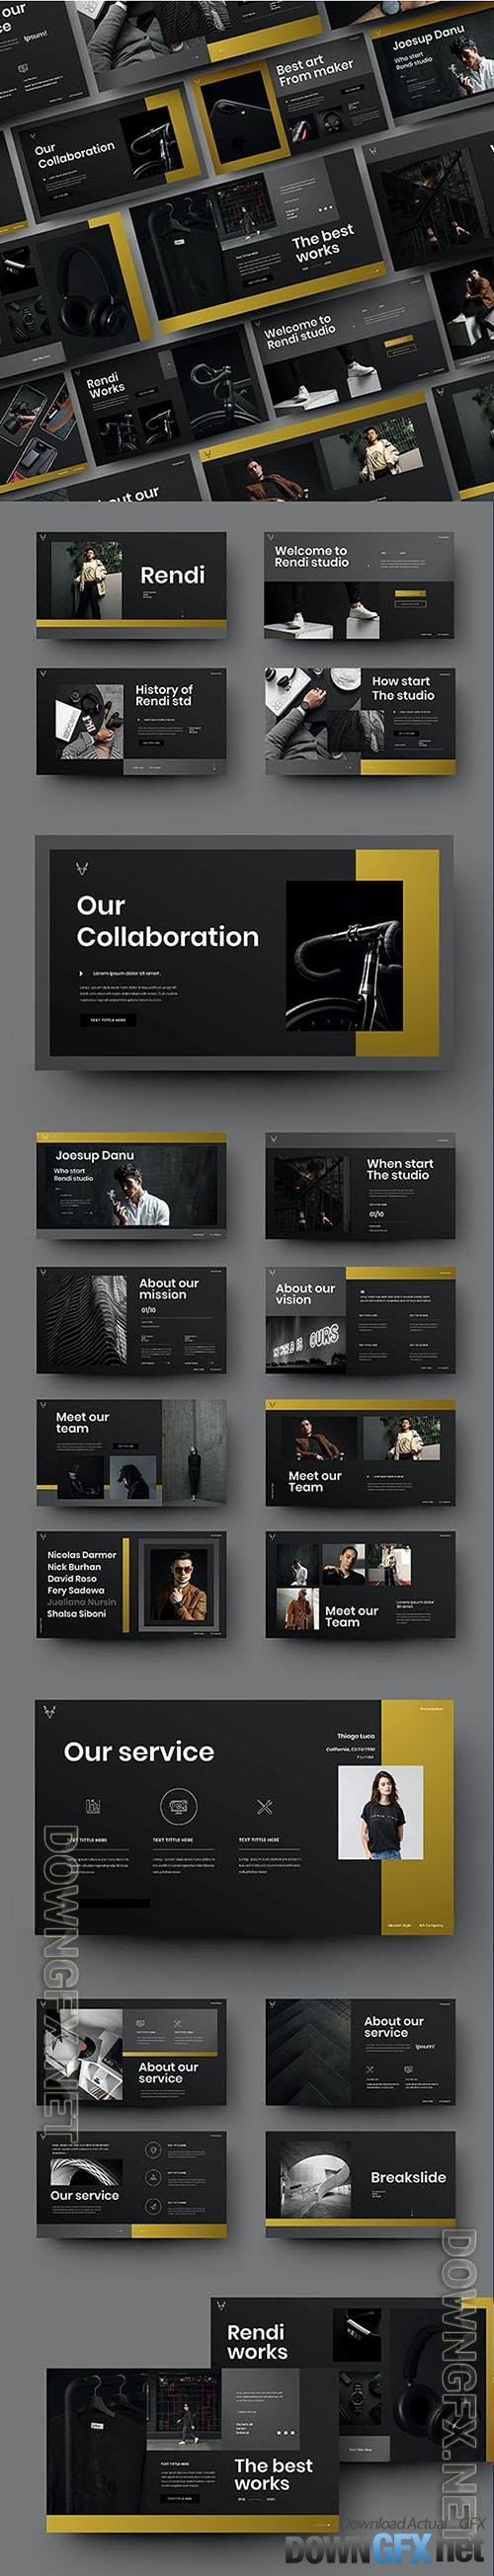 Rendi - Business Powerpoint, Keynote and Google Slides Template